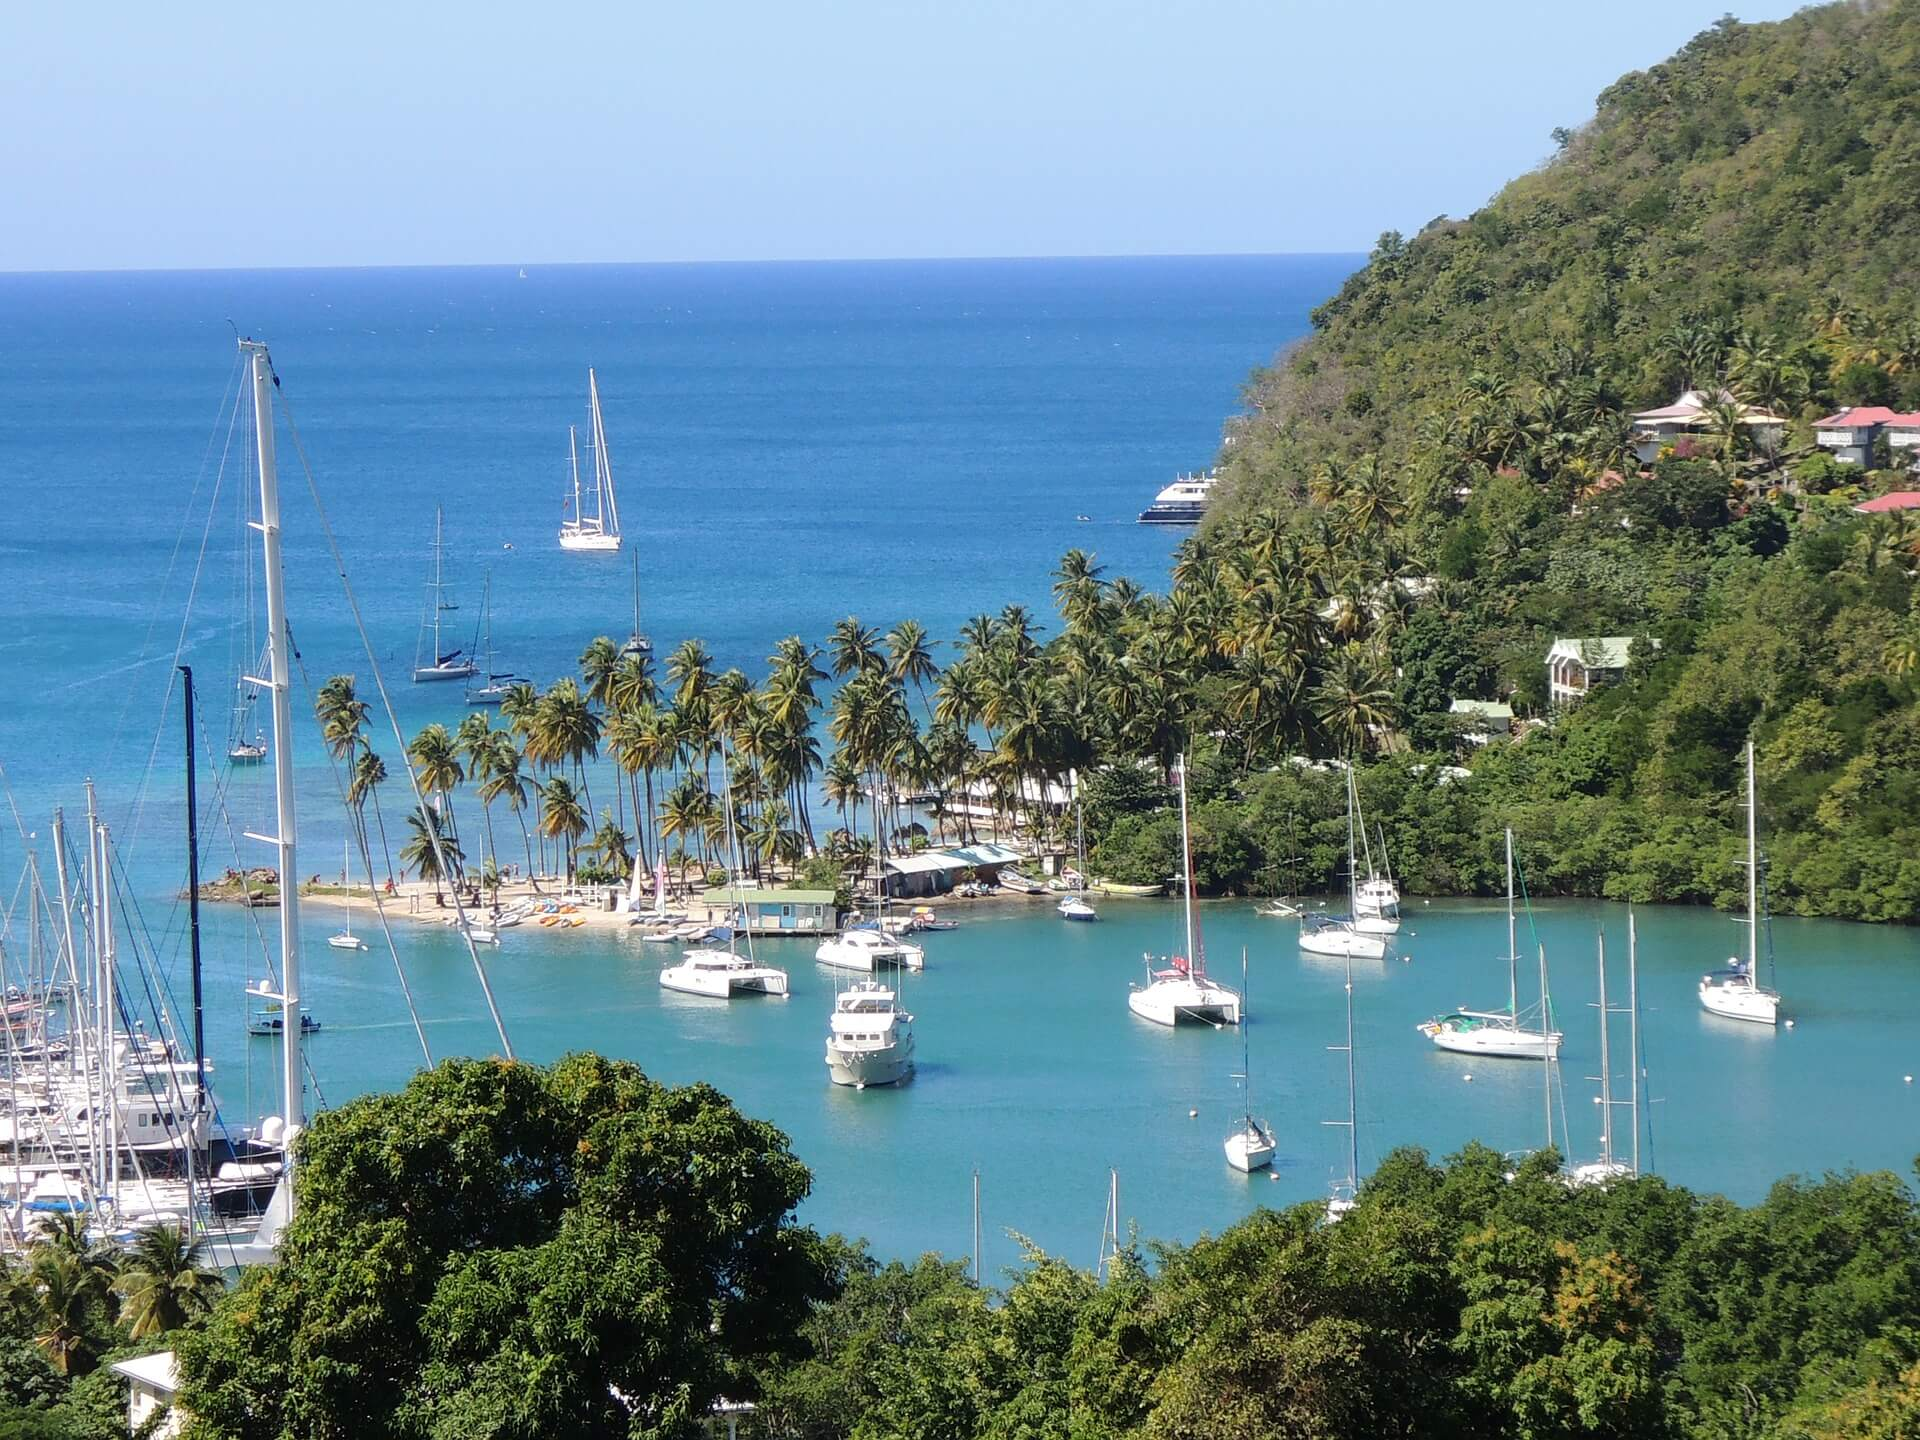 st-lucia-106119_1920 (1)